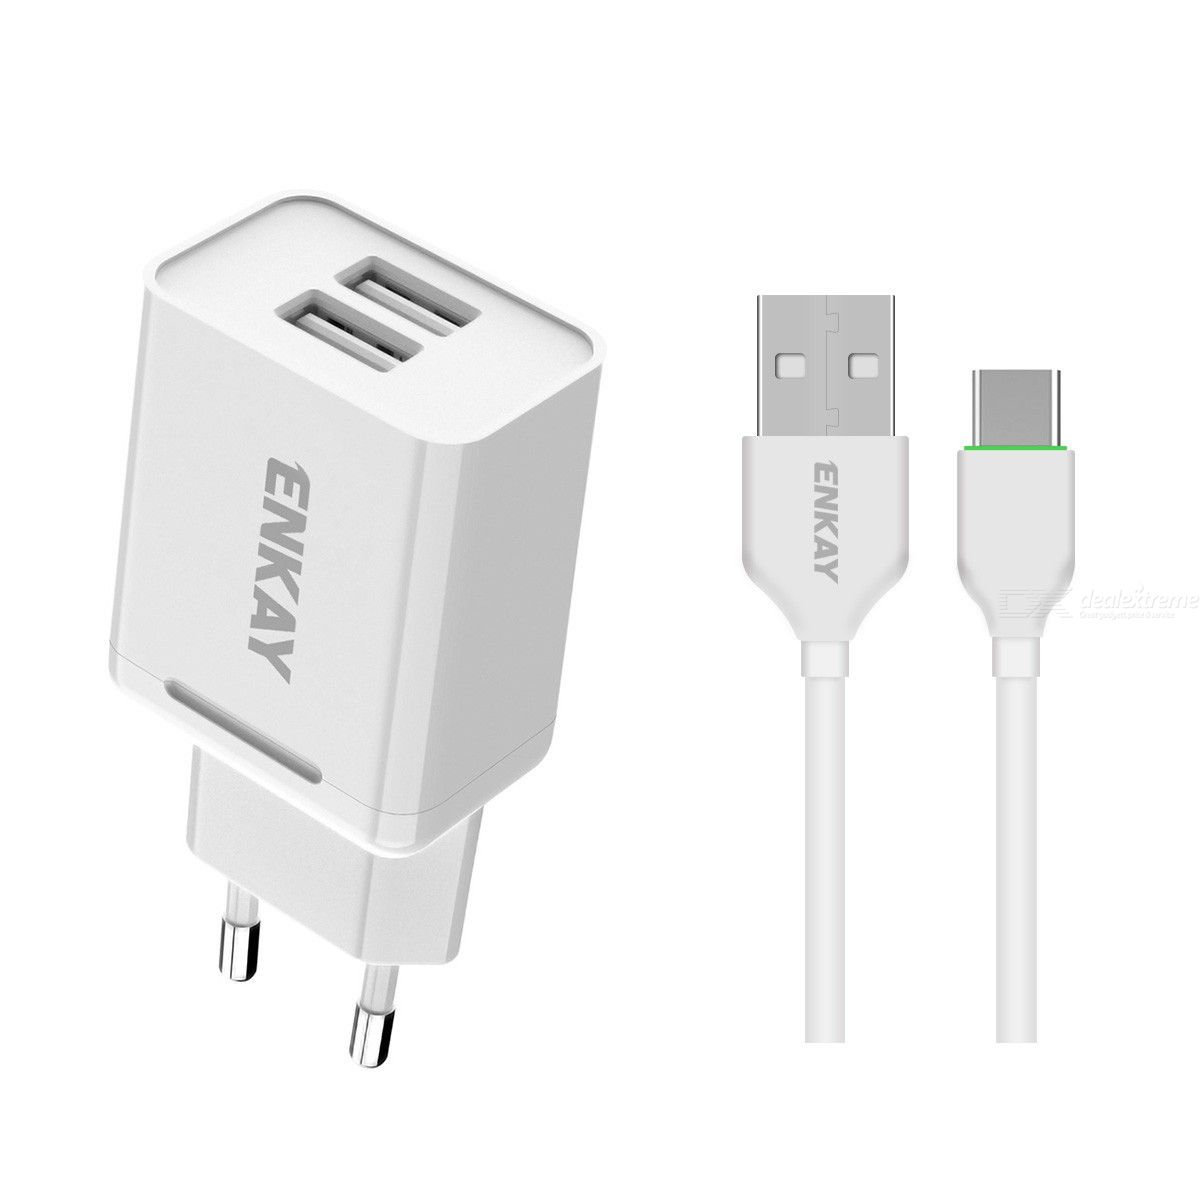 Hat-prince enkay 10.5w 2.1a adaptive charging eu plug dual usb travel power adapter with micro usb cable